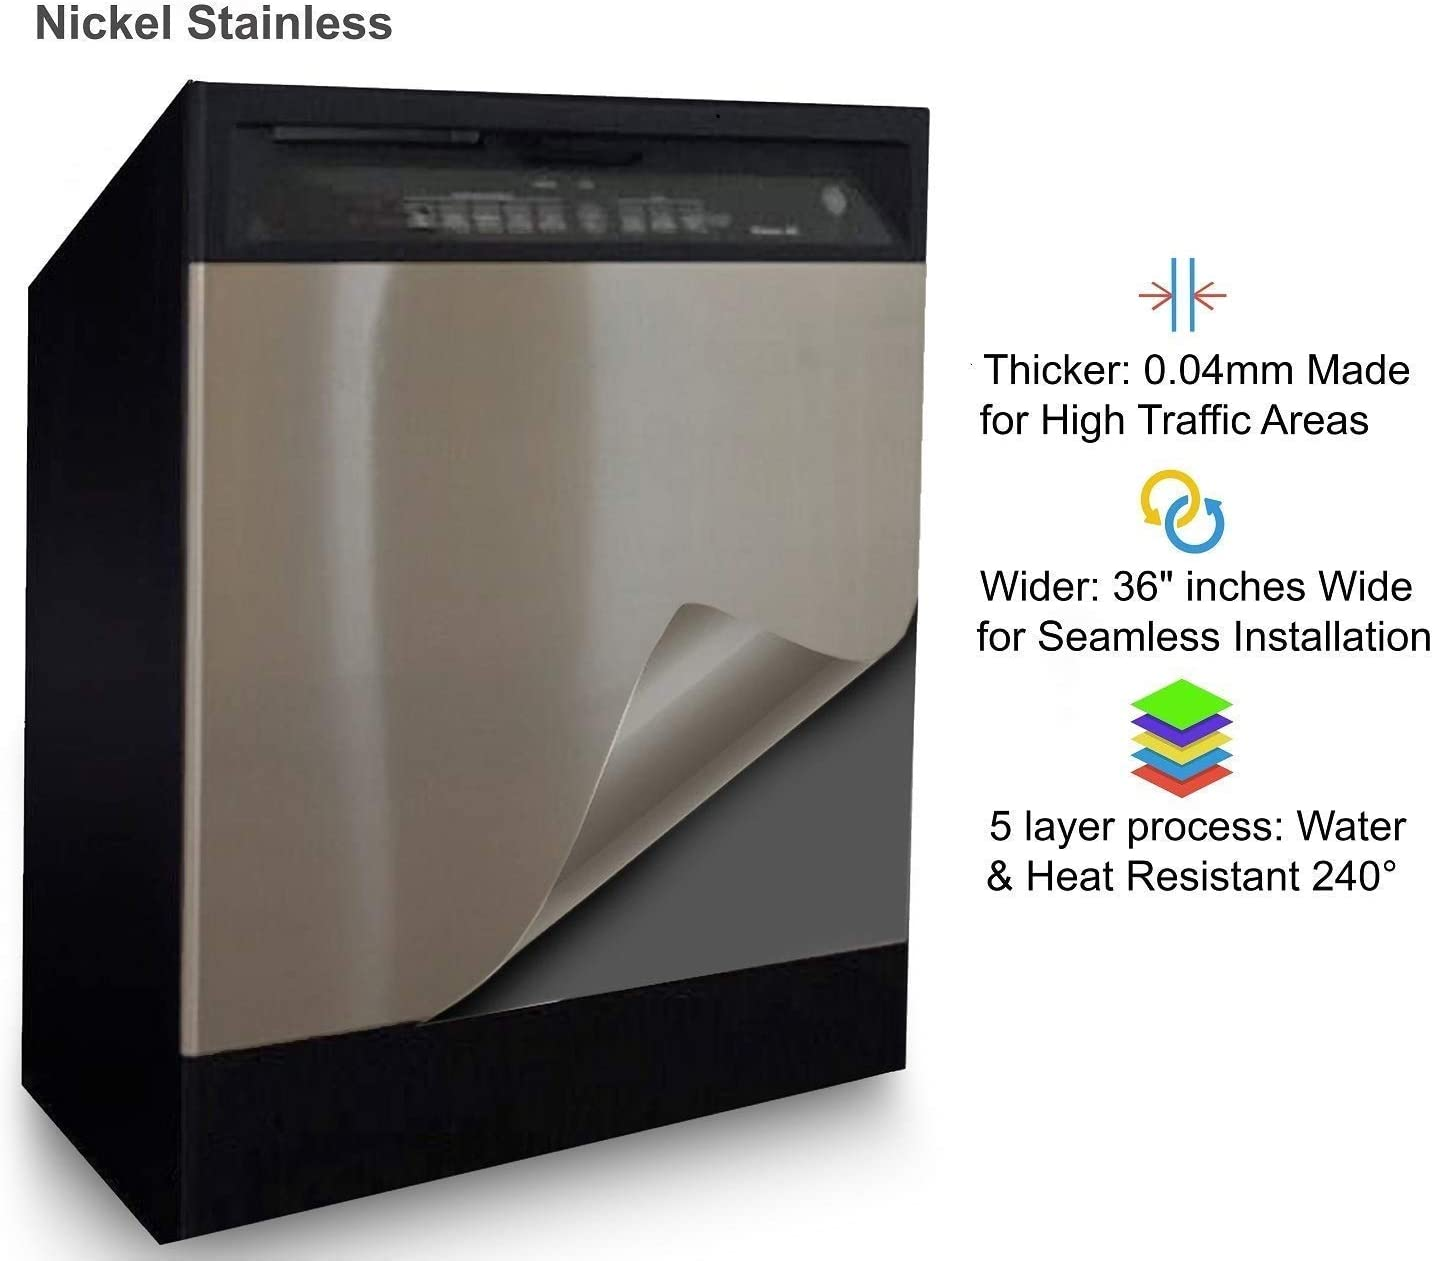 Dishwasher stainless steel Film Panel Cover Decal Panel Sticker Update